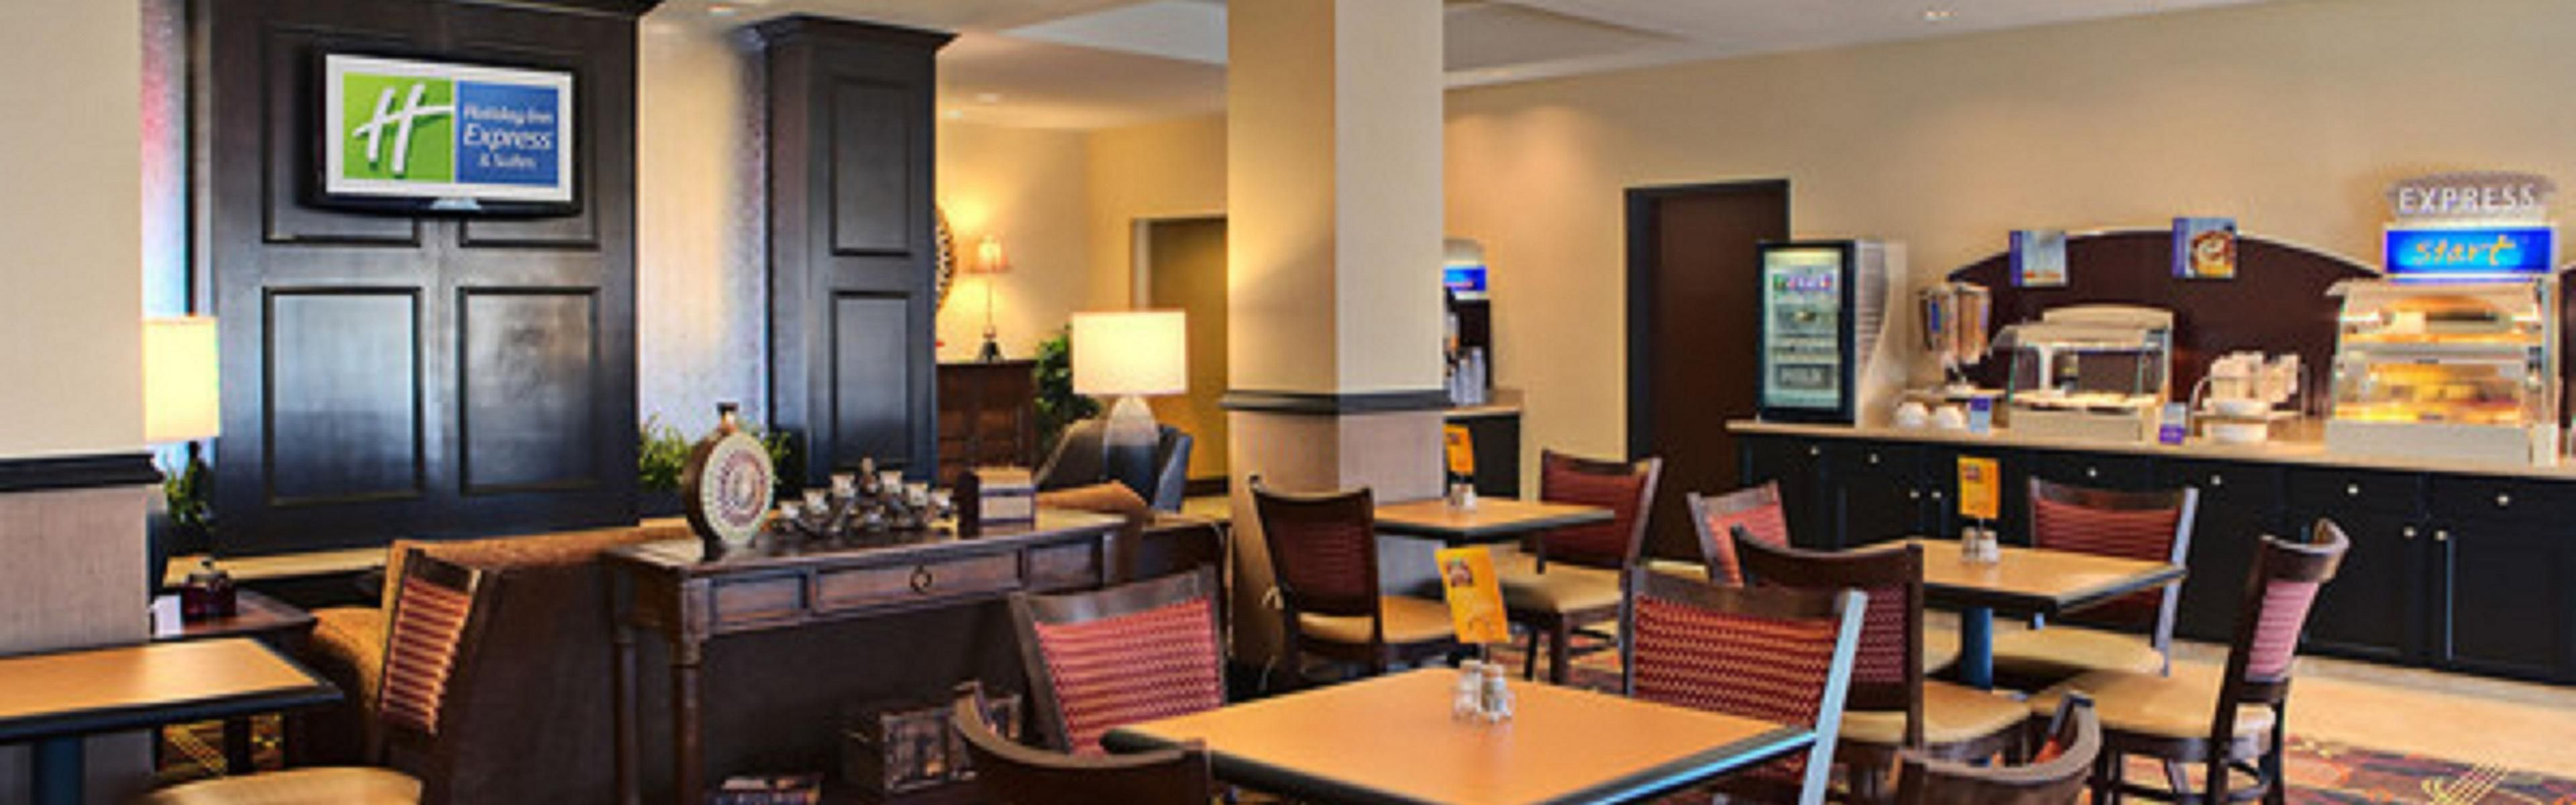 Holiday Inn Express & Suites Cotulla image 3